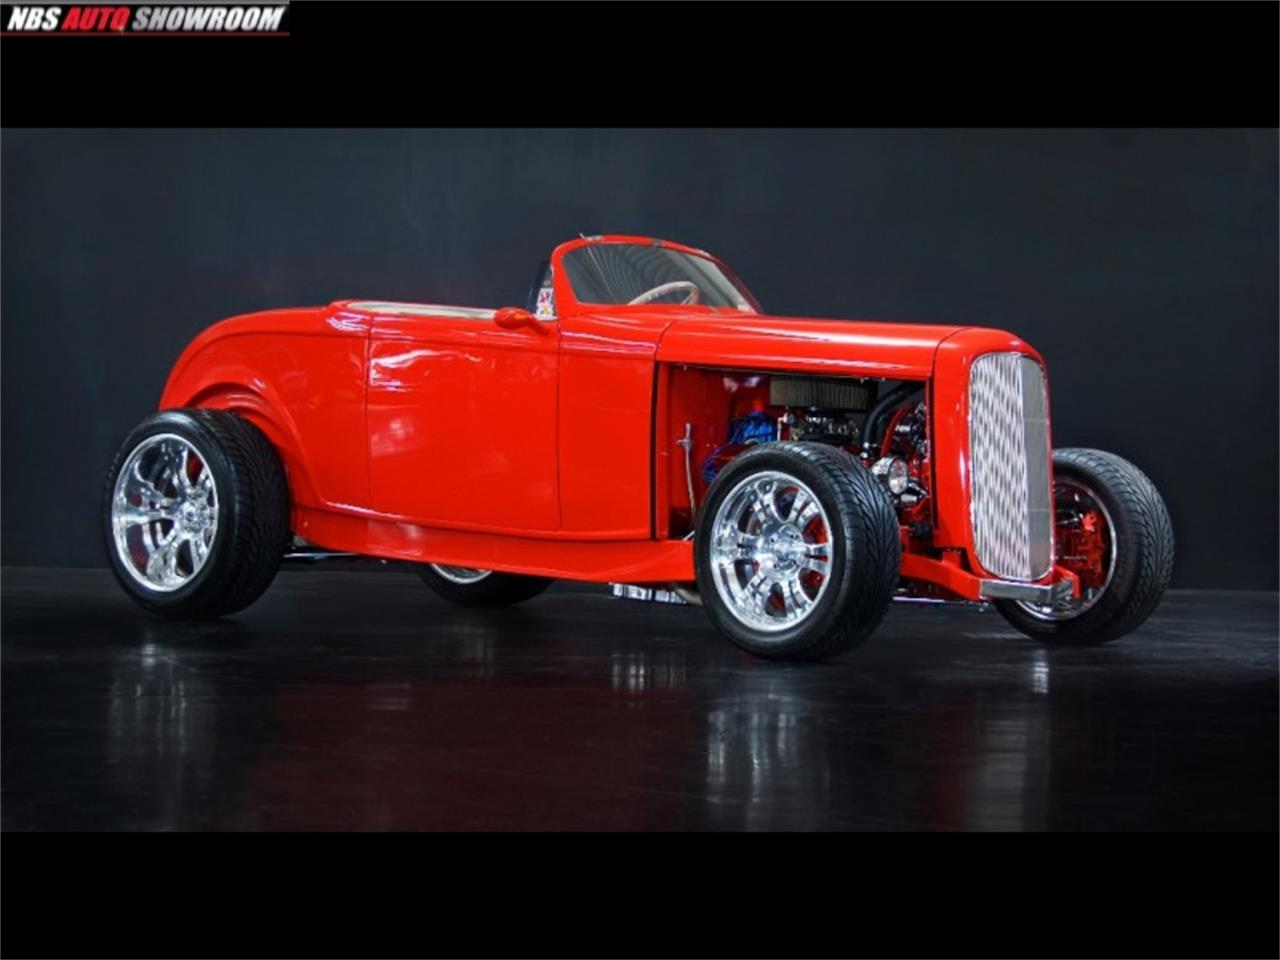 Large Picture of Classic 1932 Roadster located in Milpitas California - $37,546.00 Offered by NBS Auto Showroom - QY4R